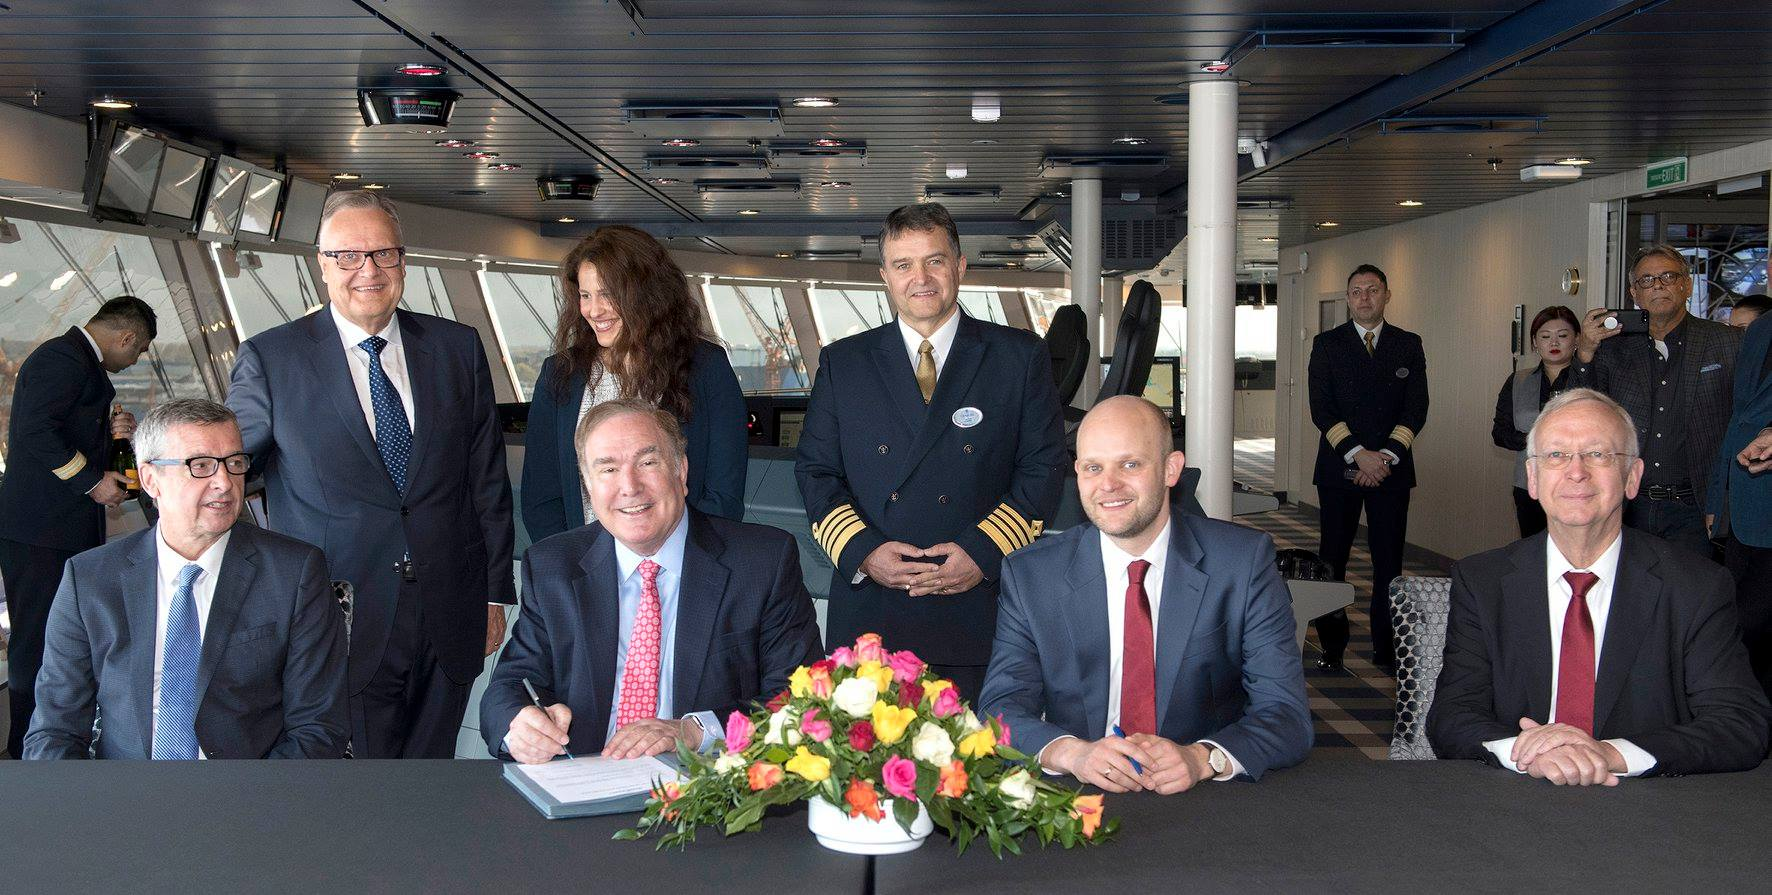 Spectrum of the Seas joins Royal Caribbean's fleet following delivery ceremony